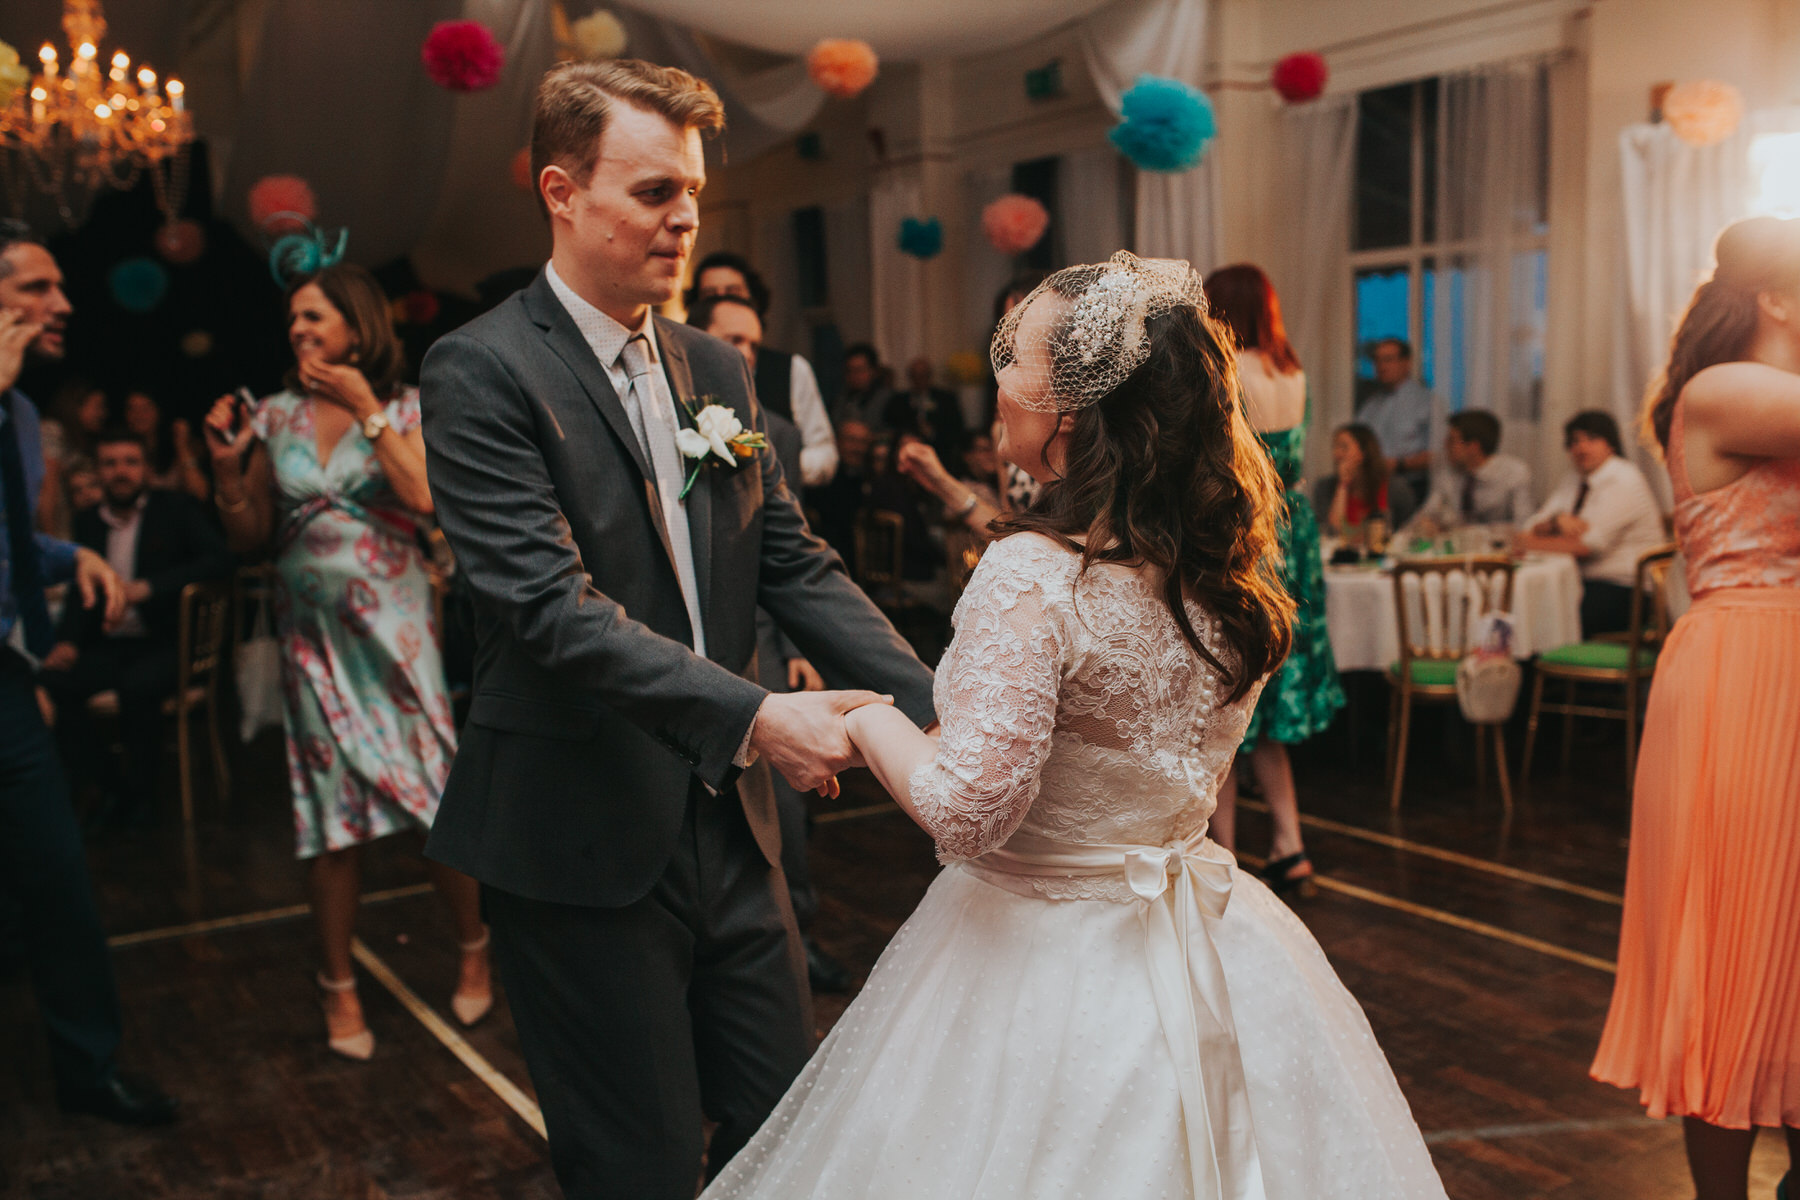 258 first dance school hall wedding reception London.jpg